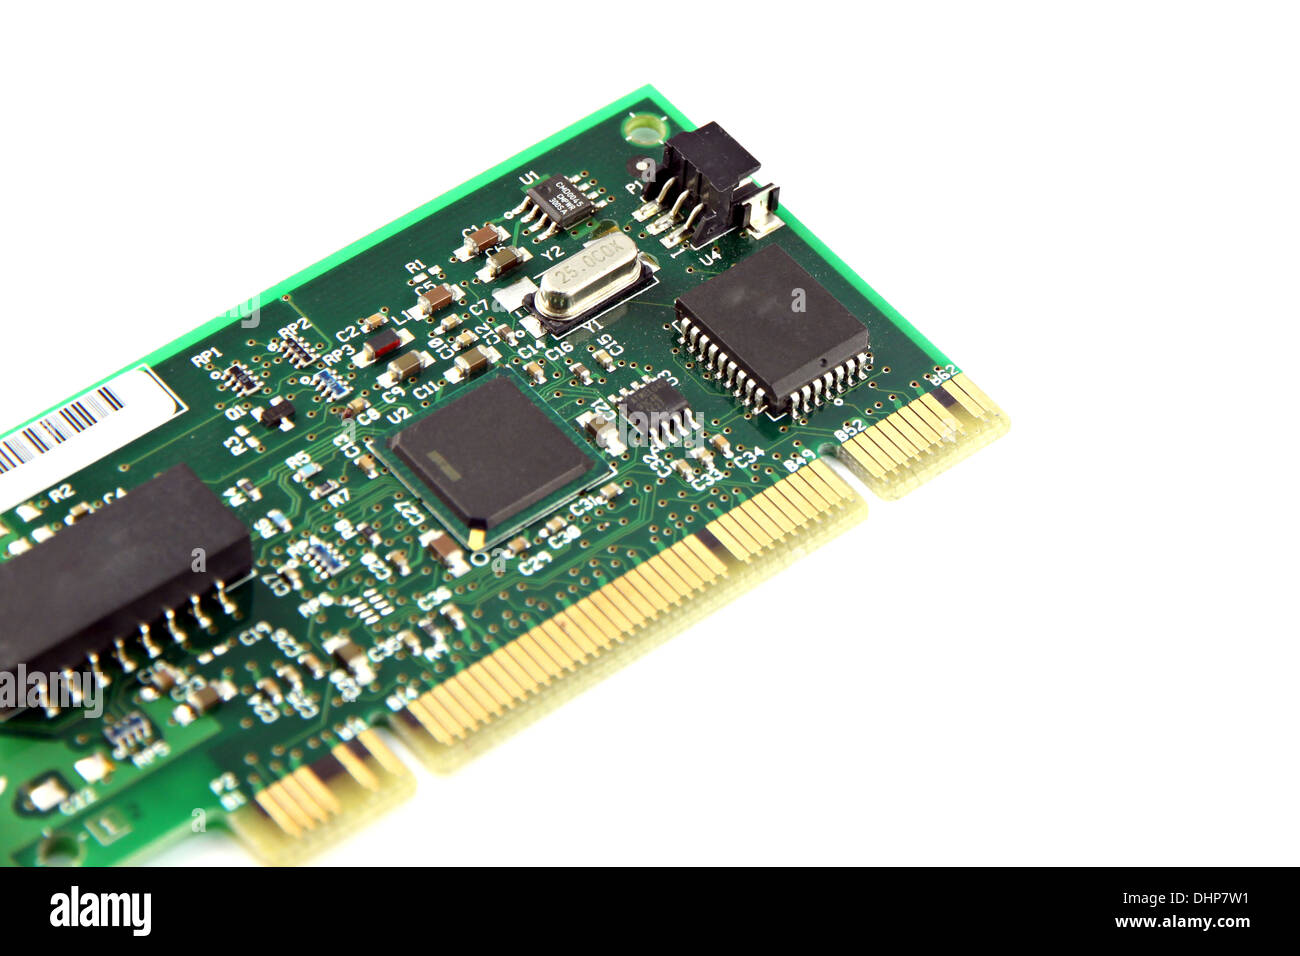 Mother Rom Stock Photos Images Alamy Circuit Board Recycling Equipmentcircuit Electronic Green Computer Equipment On White Background Image